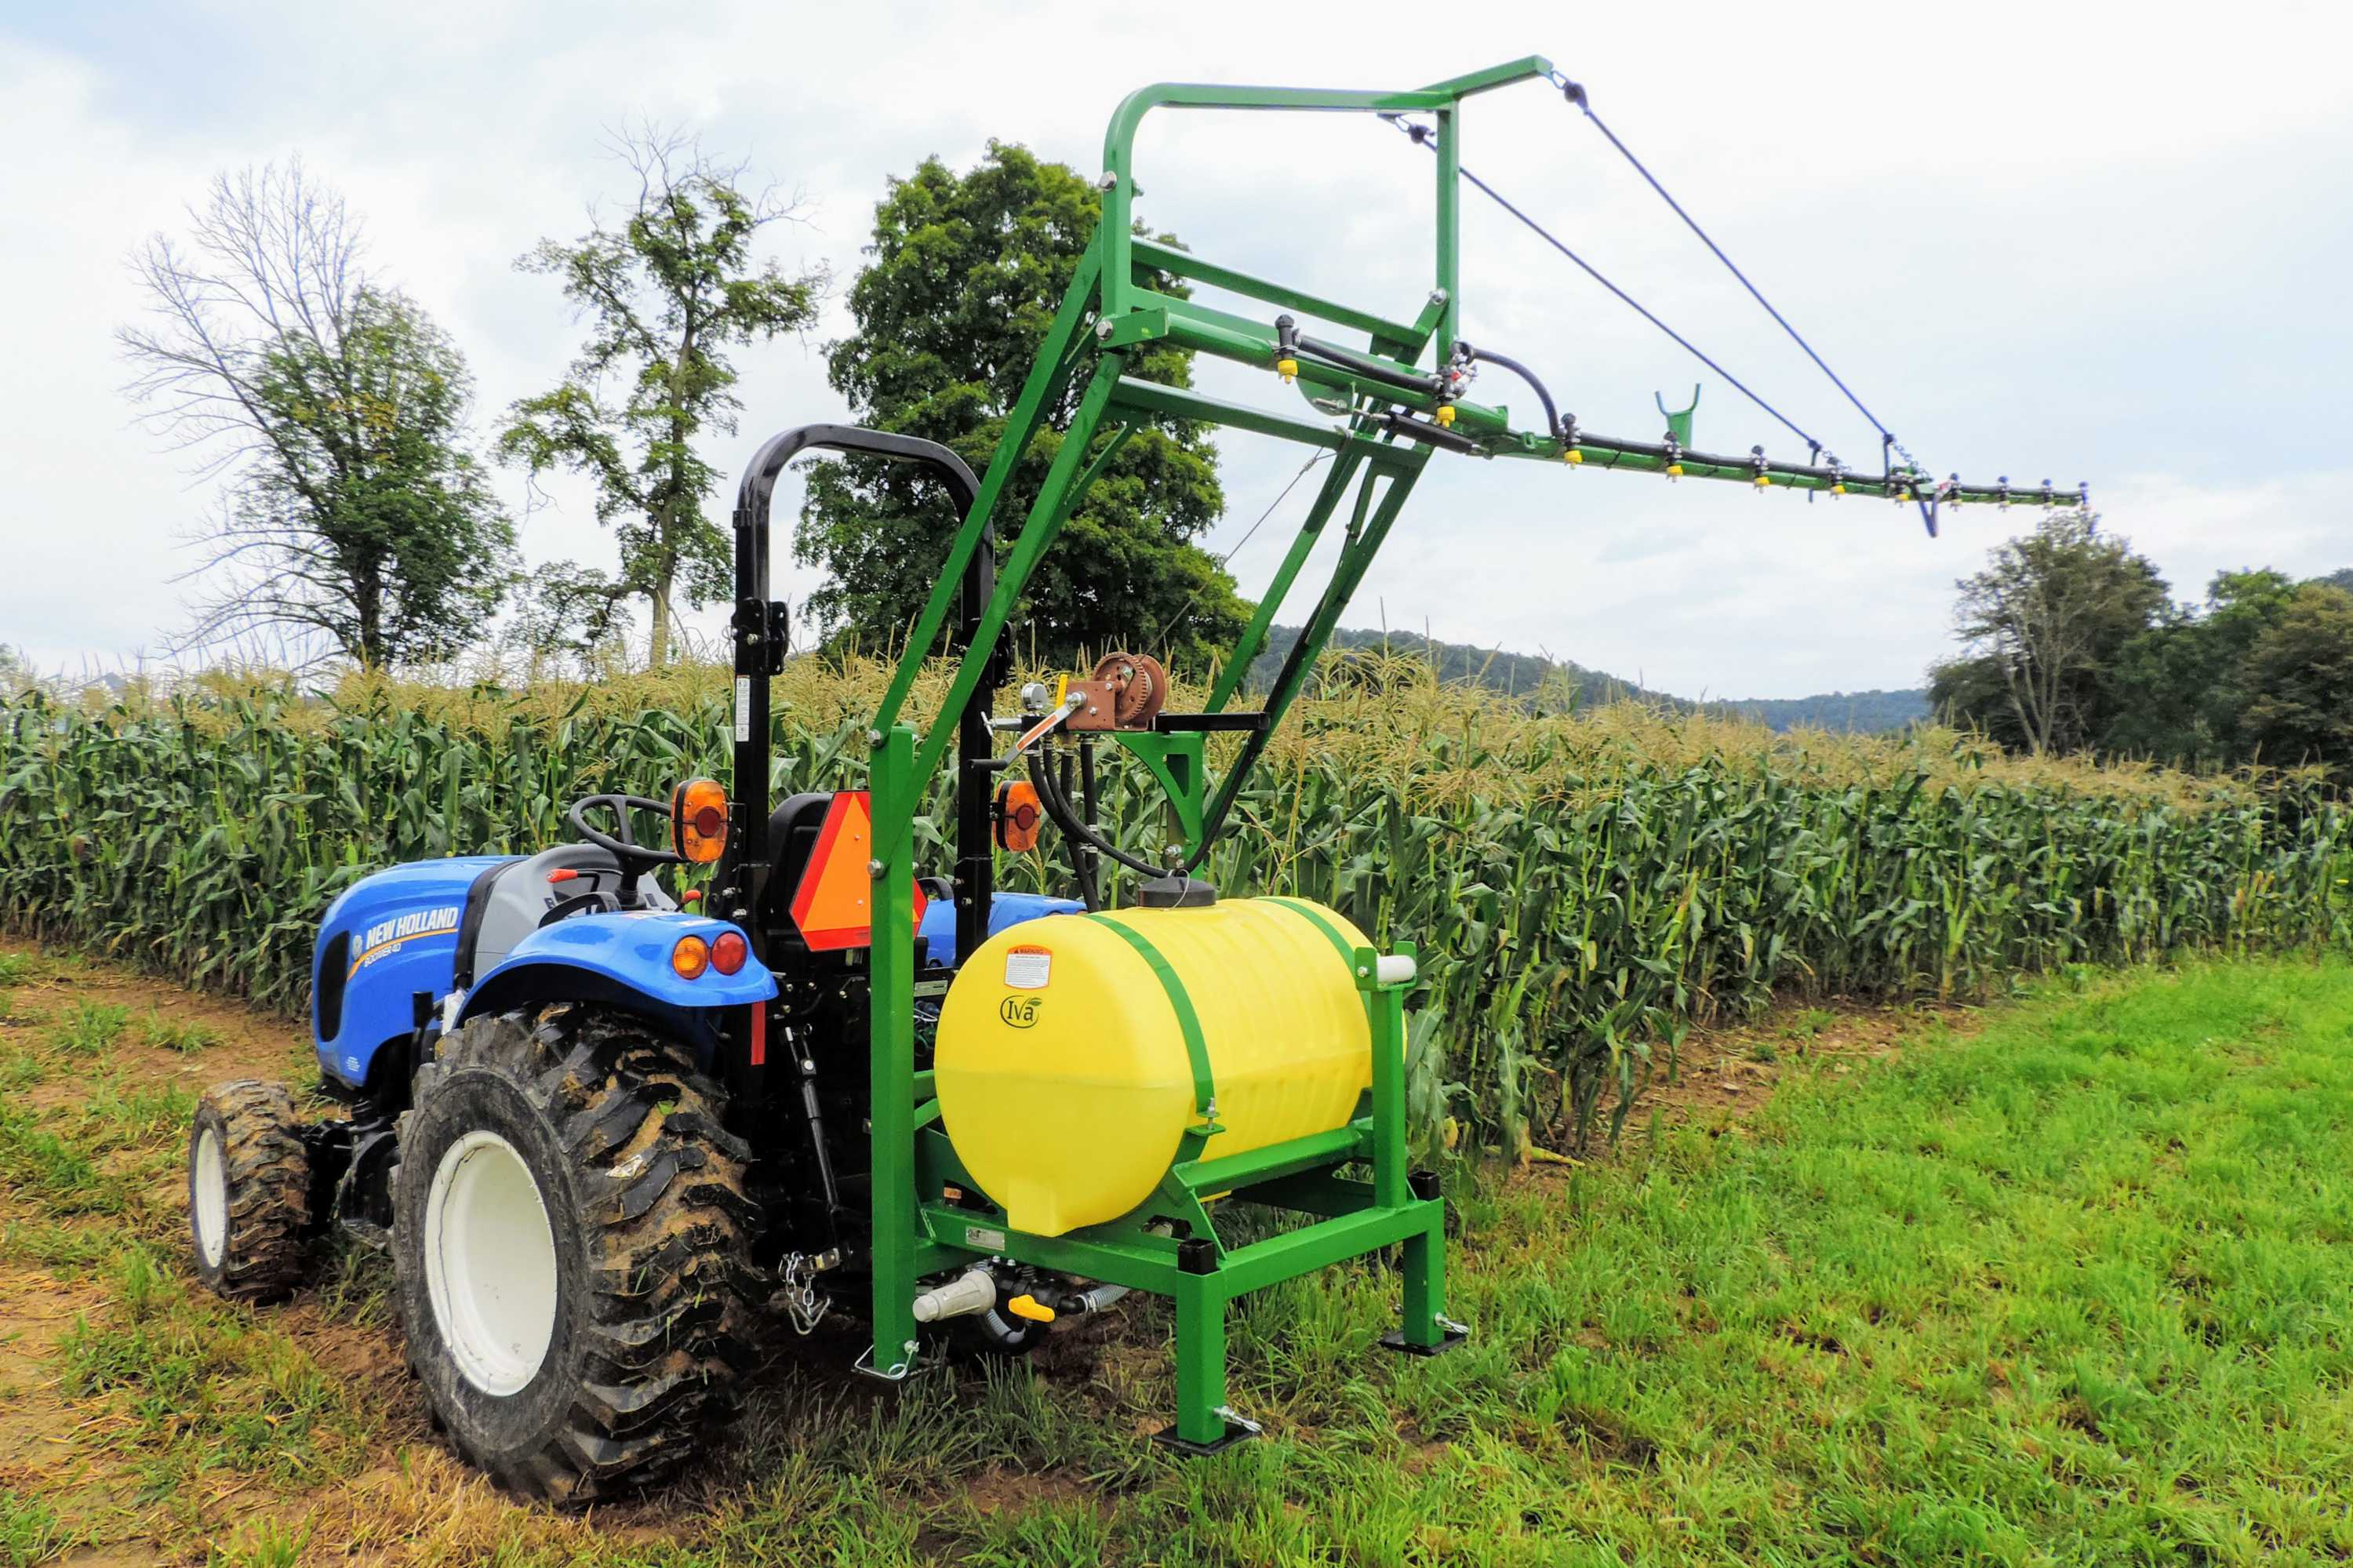 55 gallon 3-point hitch produce sprayer with 15' single sided boom